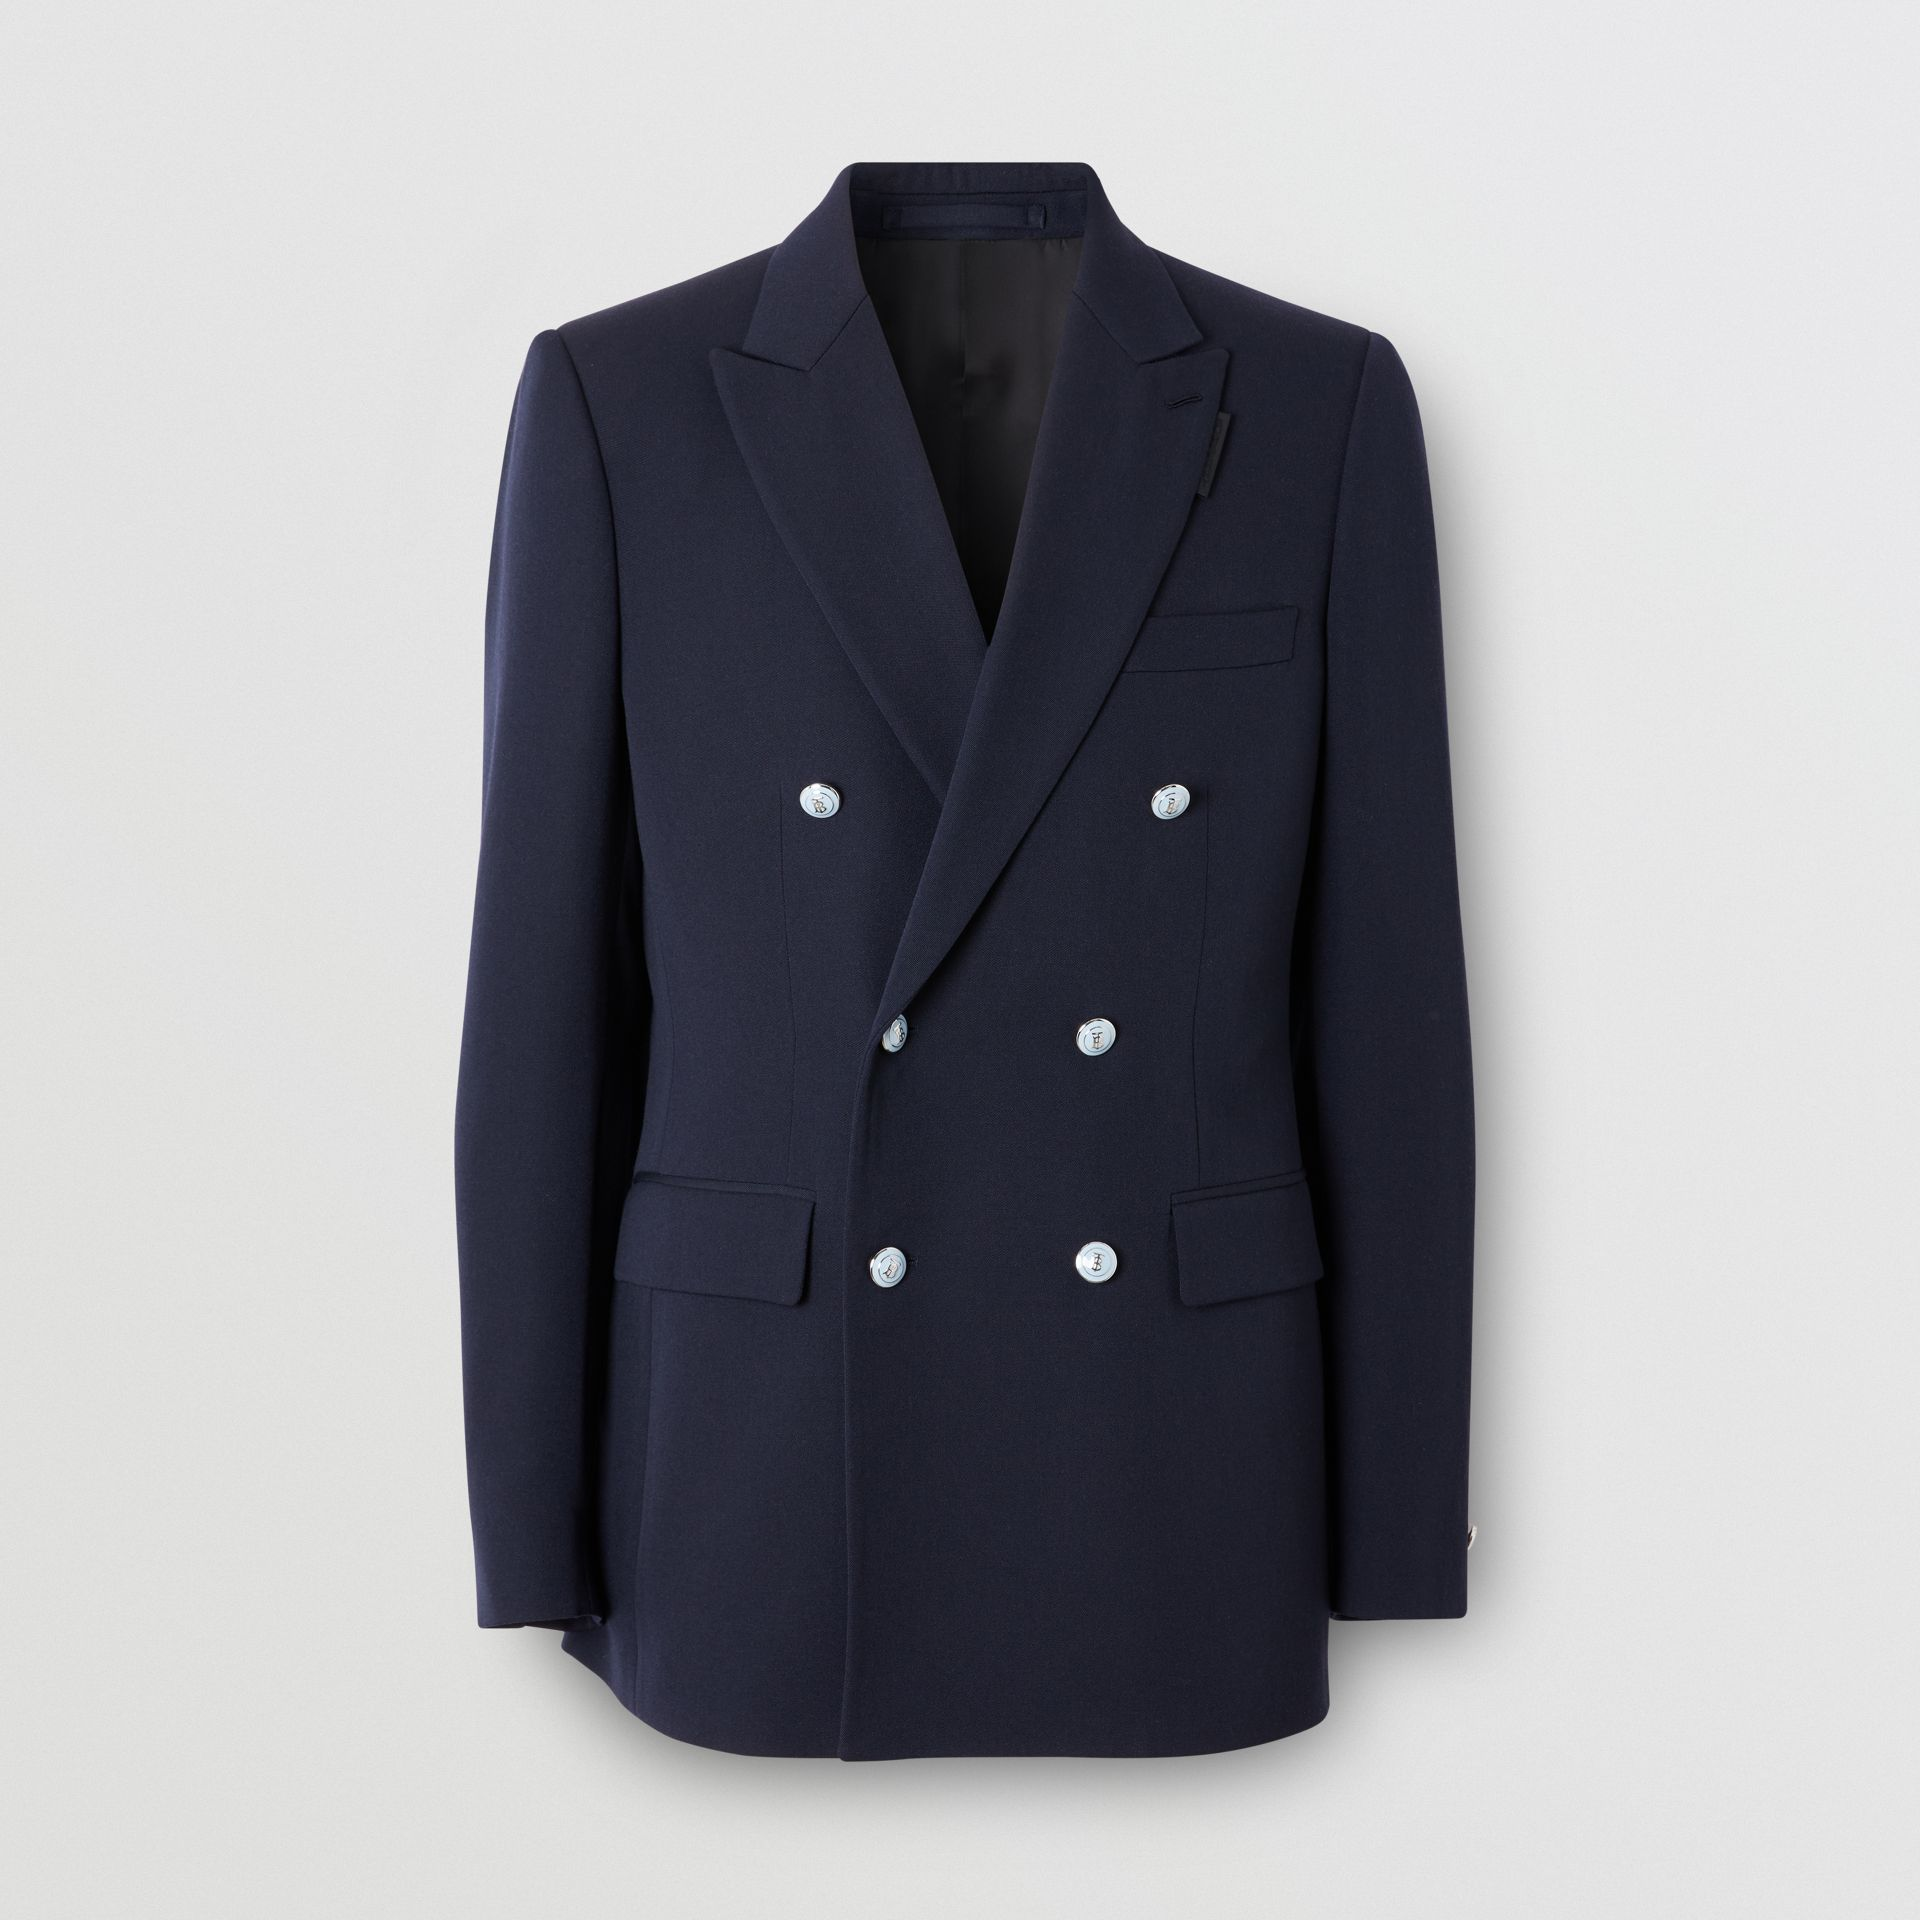 English Fit Wool Double-breasted Jacket - Men | Burberry - gallery image 3